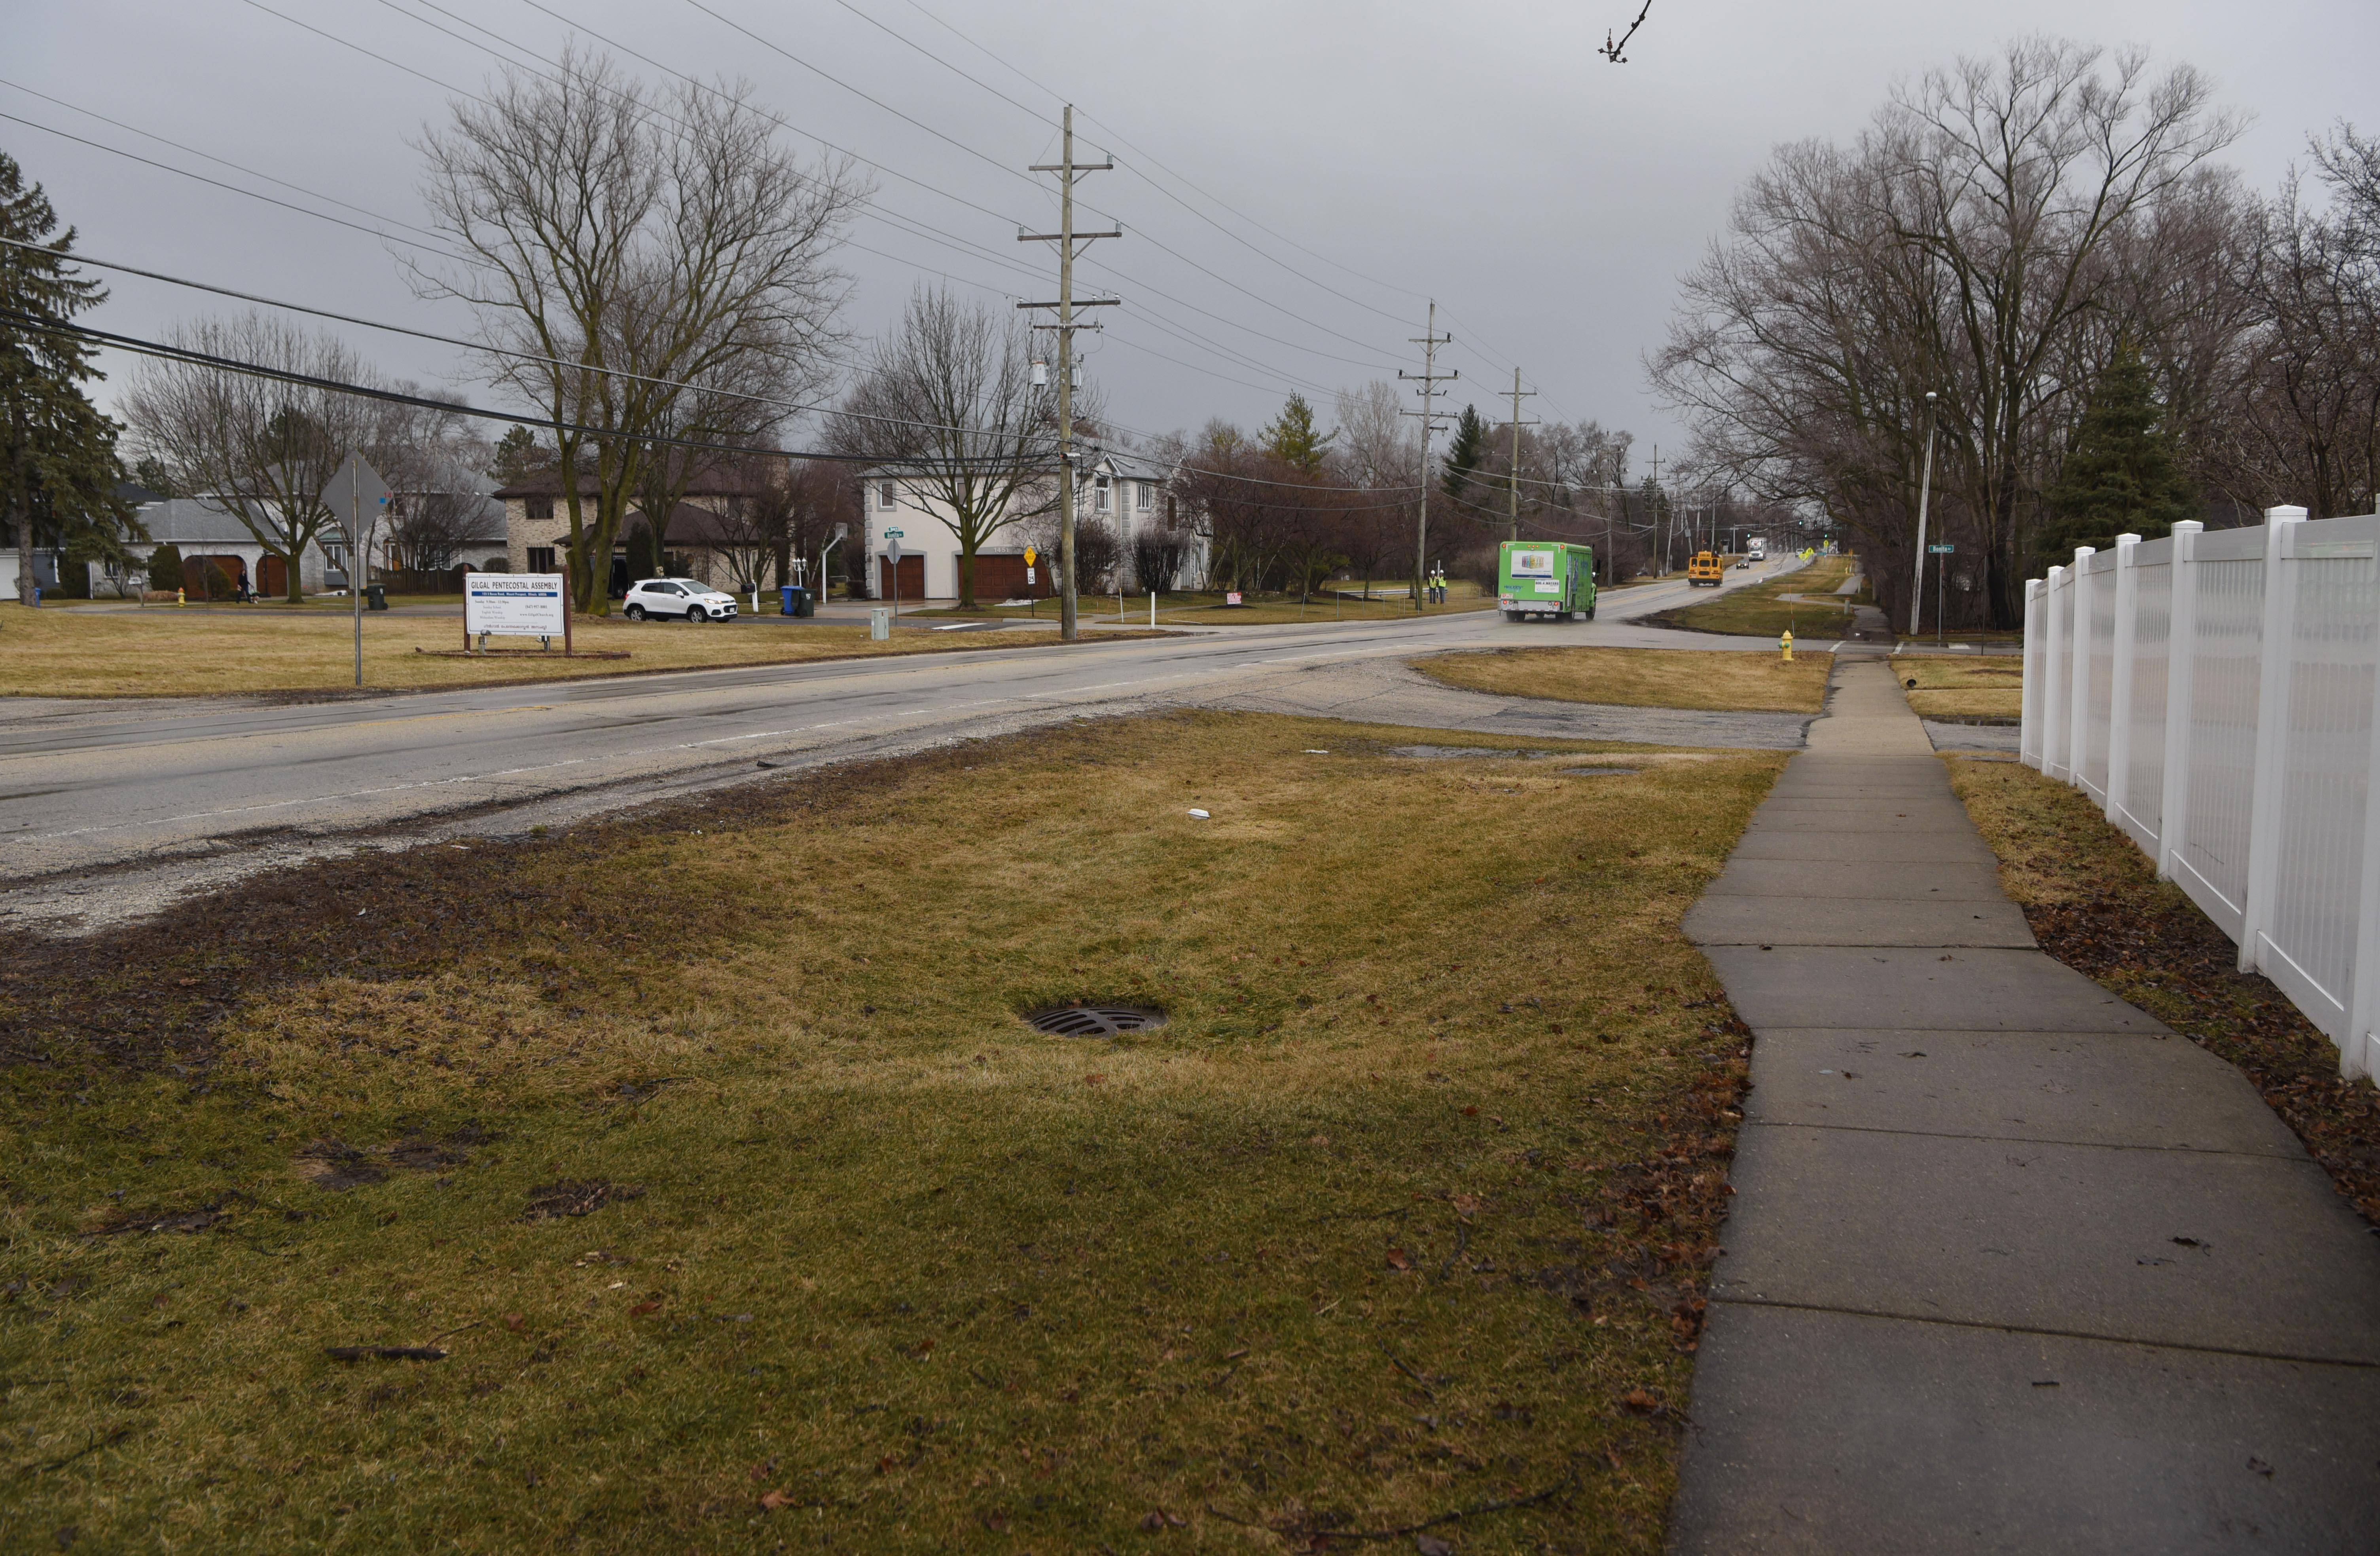 Cook County transportation officials are moving ahead with plans to widen Busse Road between Golf and Central roads in Mount Prospect, despite ongoing opposition from residents living along the two-lane road.